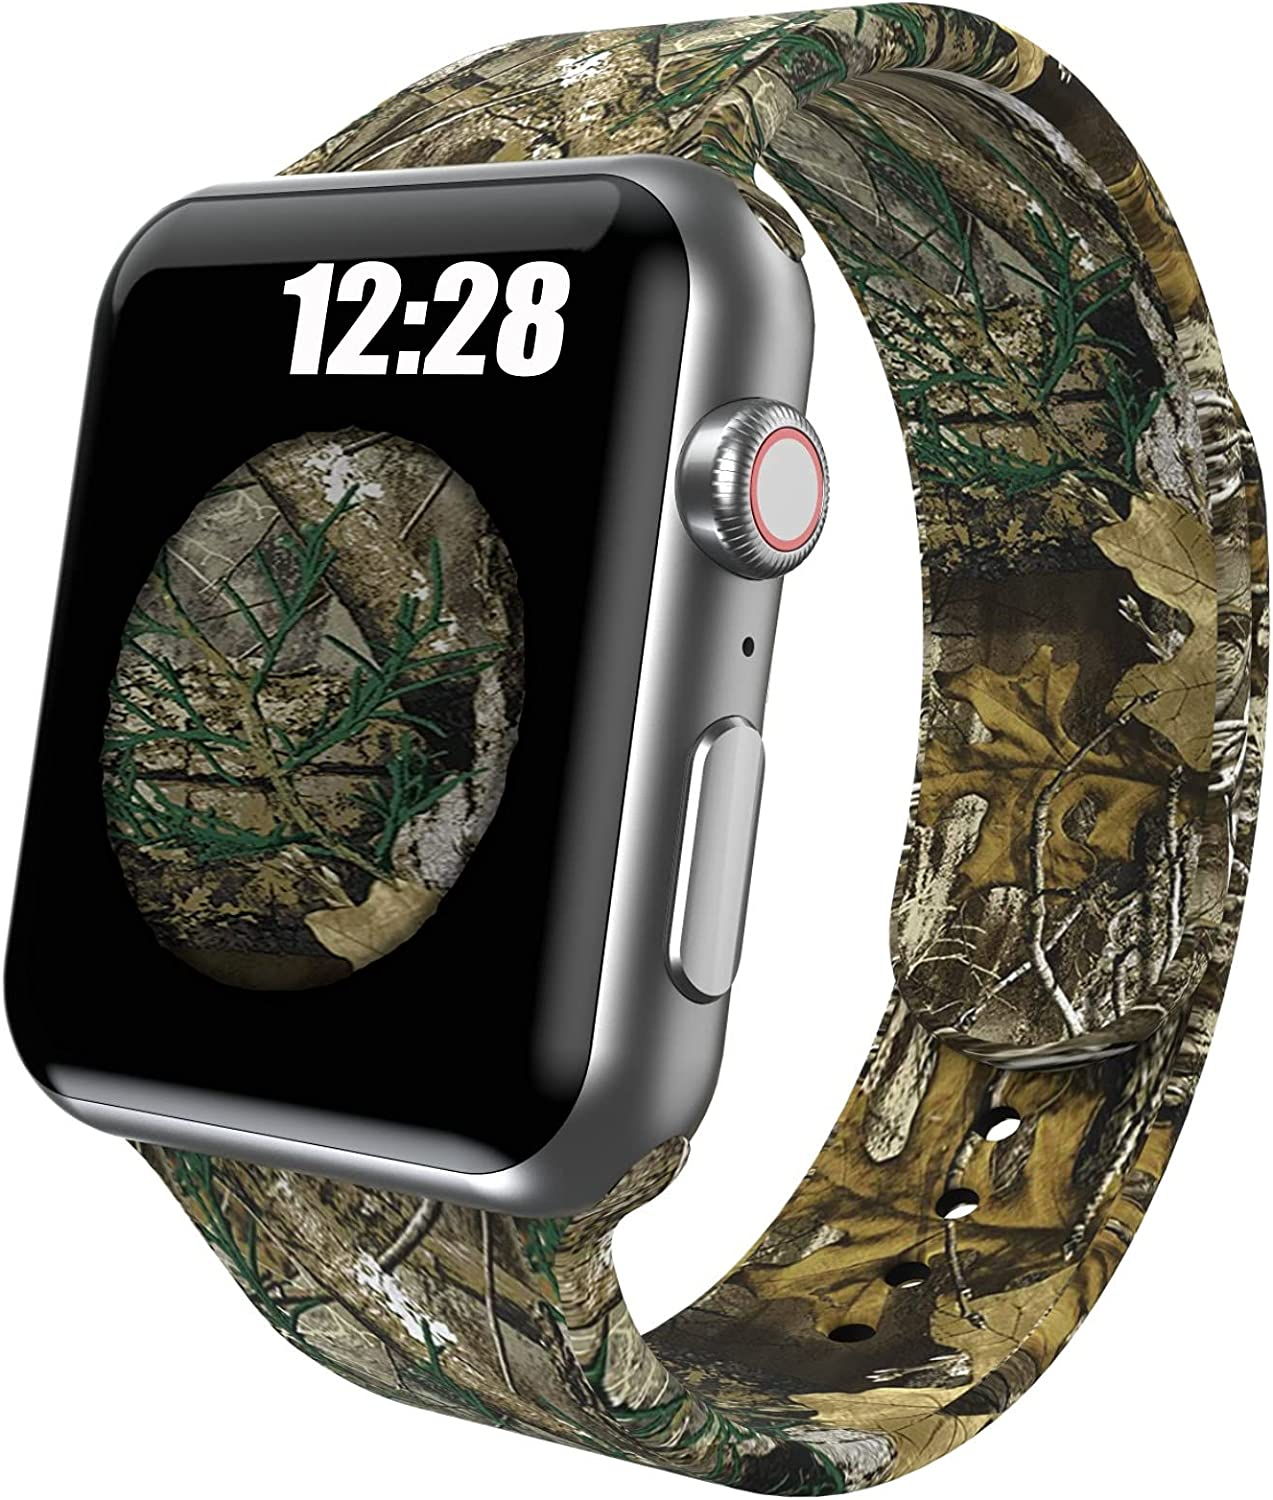 OTTARTAKS Band Compatible with Apple Watch Bands 38mm 40mm iWatch Series 6 5 SE 4 3 2 1, Silicone Realtree Camo Xtra Apple Watch Band for Men Boys